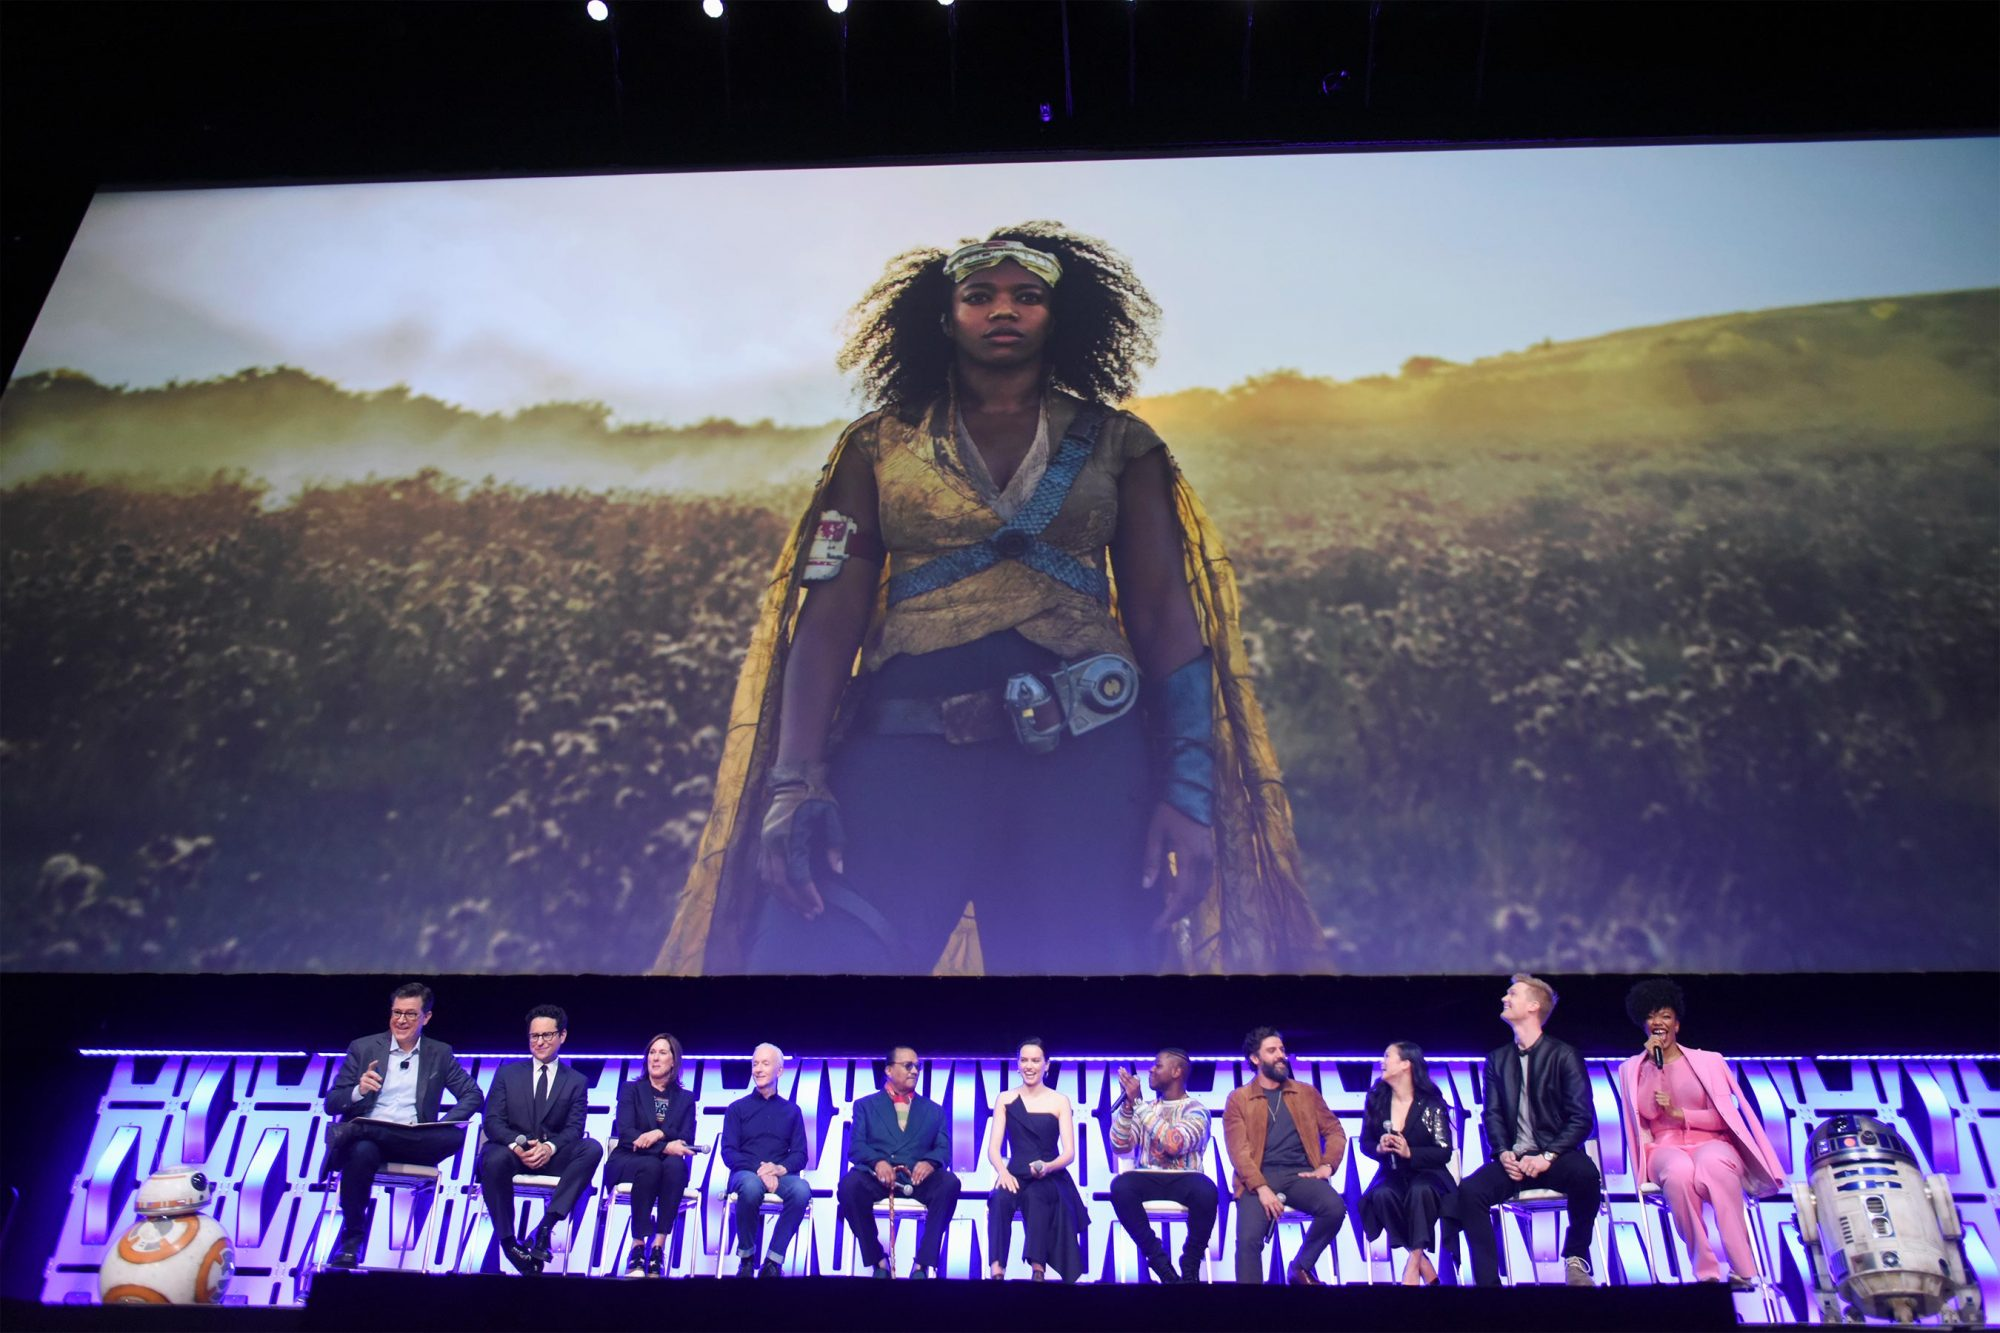 "CHICAGO, IL - APRIL 12: (L-R) BB-8, Moderator Stephen Colbert, Director J.J. Abrams, Producer Kathleen Kennedy, Anthony Daniels (C-3PO), Billy Dee Williams (Lando Calrissian), Daisy Ridley (Rey), John Boyega (Finn), Oscar Isaac (Poe Dameron), Kelly Marie Tran (Rose Tico), Joonas Suotamo (Chewbacca), Naomi Ackie (Jannah) and R2-D2 onstage during ""The Rise of Skywalker"" panel at the Star Wars Celebration at McCormick Place Convention Center on April 12, 2019 in Chicago, Illinois. (Photo by Daniel Boczarski/Getty Images for Disney )"